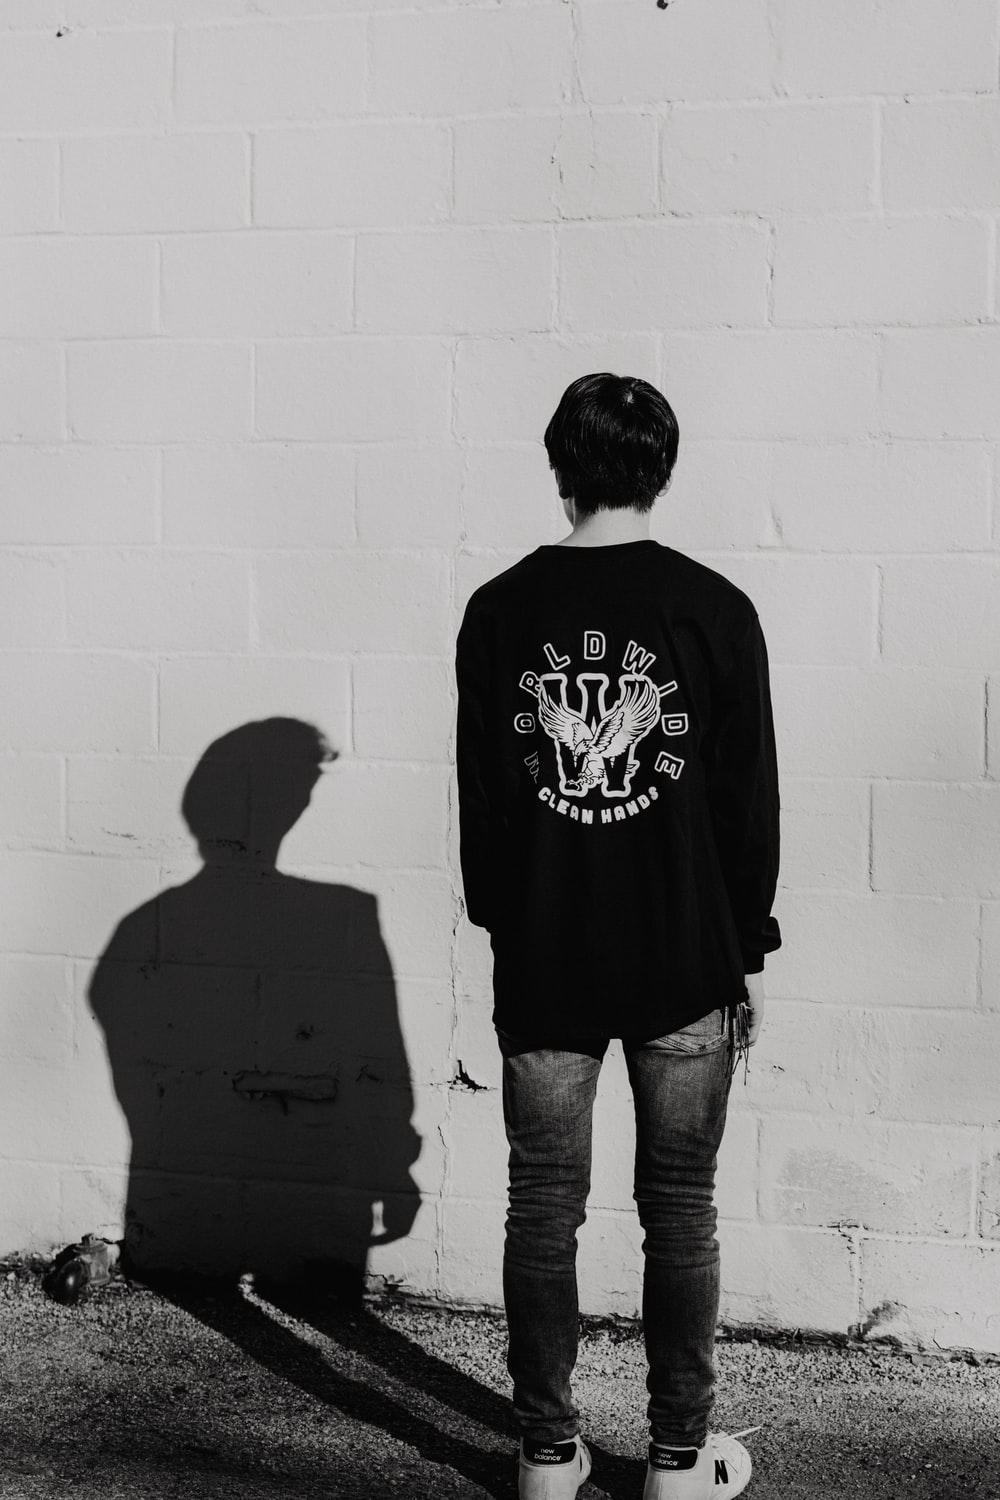 man standing and facing back near wall